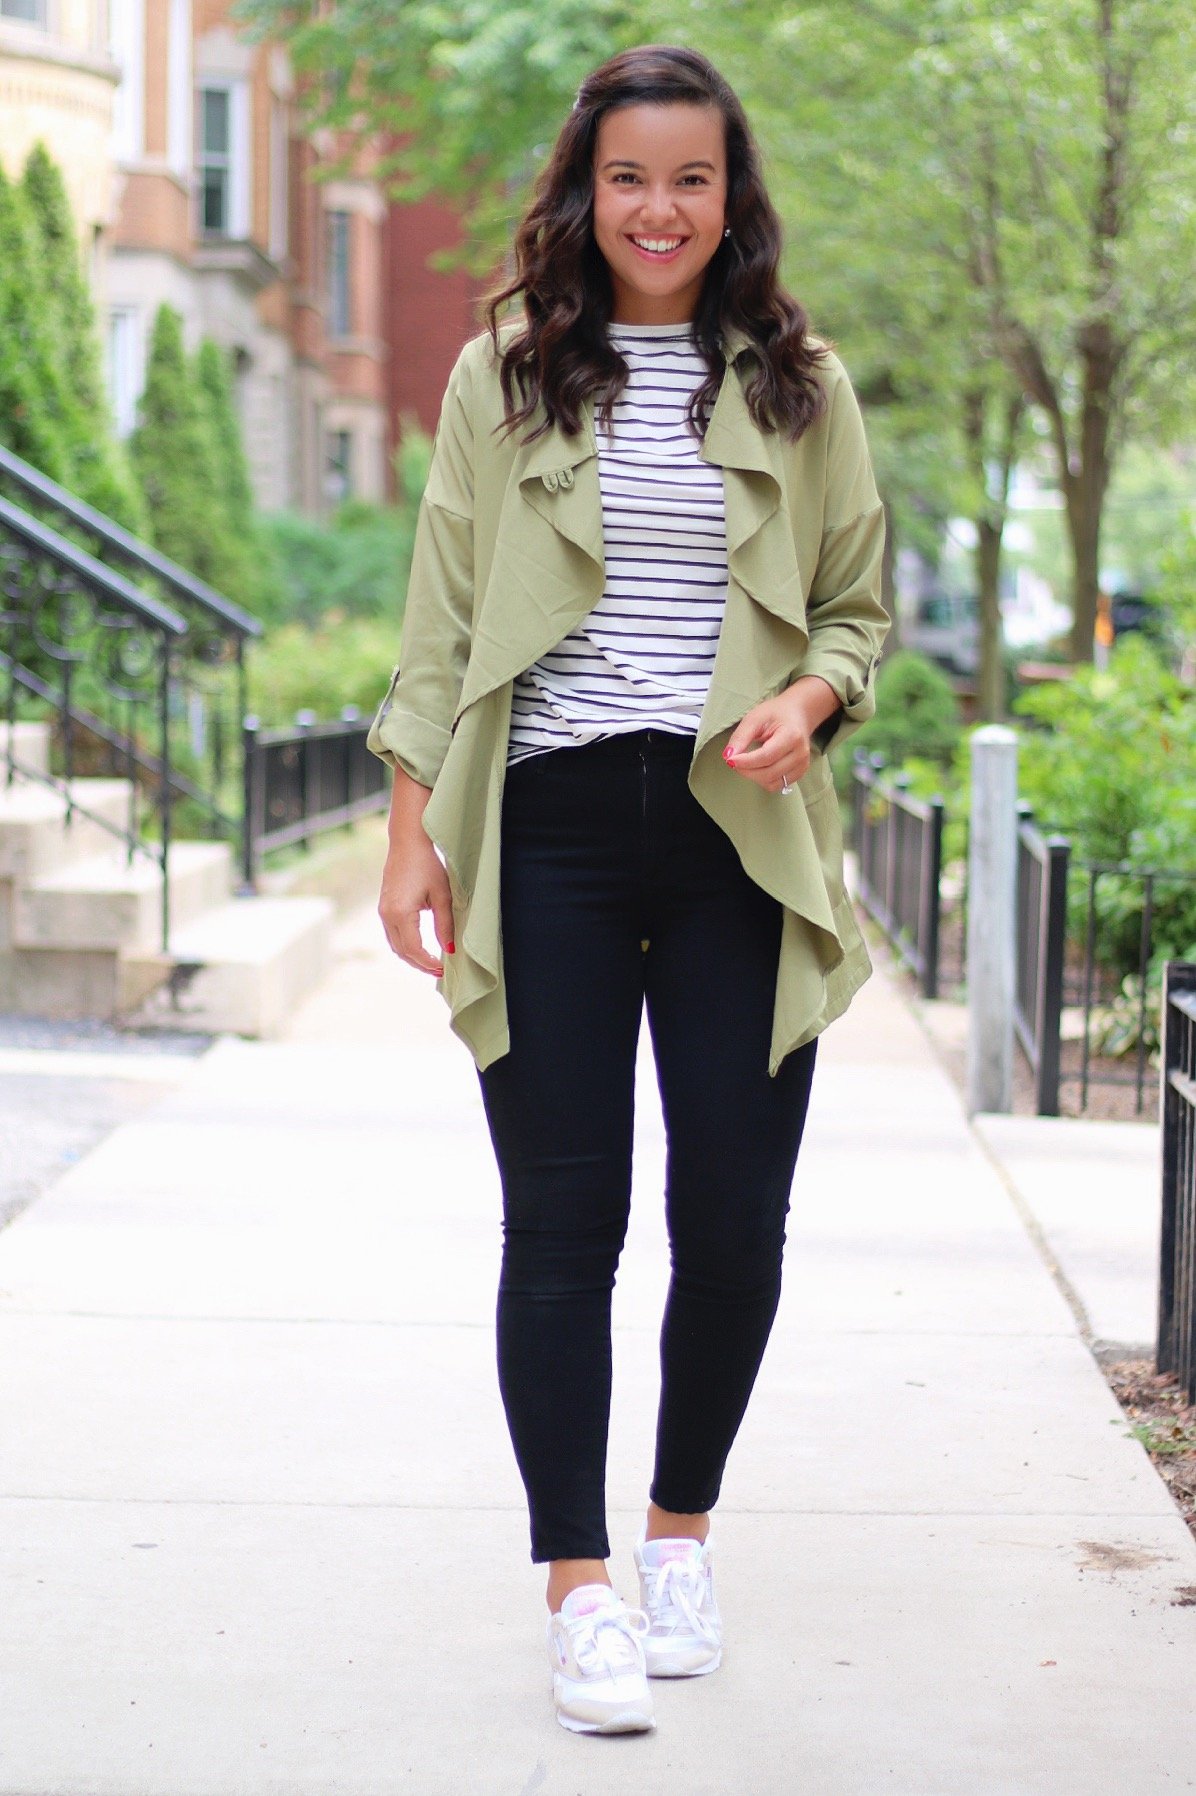 How to style sneakers? 3 chic (and easy!) looks for every occasion, How to style sneakers: 3 chic (and easy!) looks for every occasion